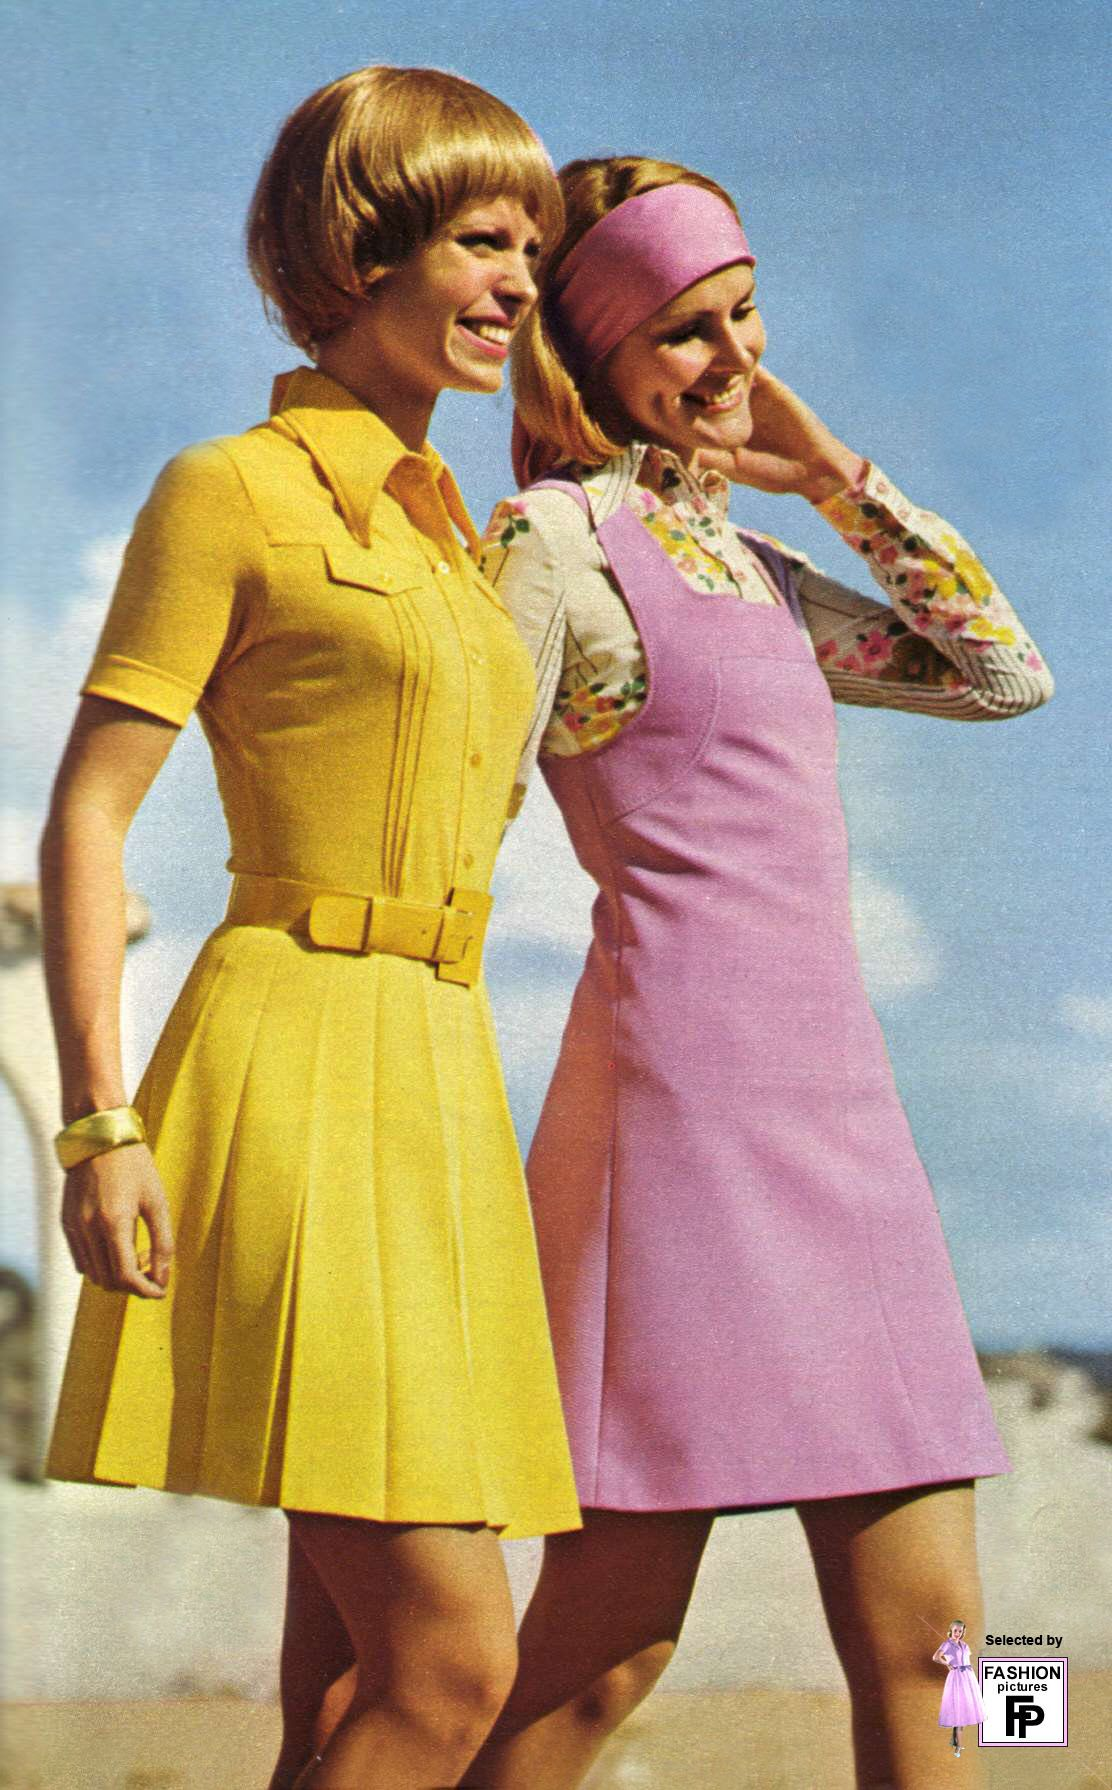 1970s mini dresses. I really was born in the wrong era ...